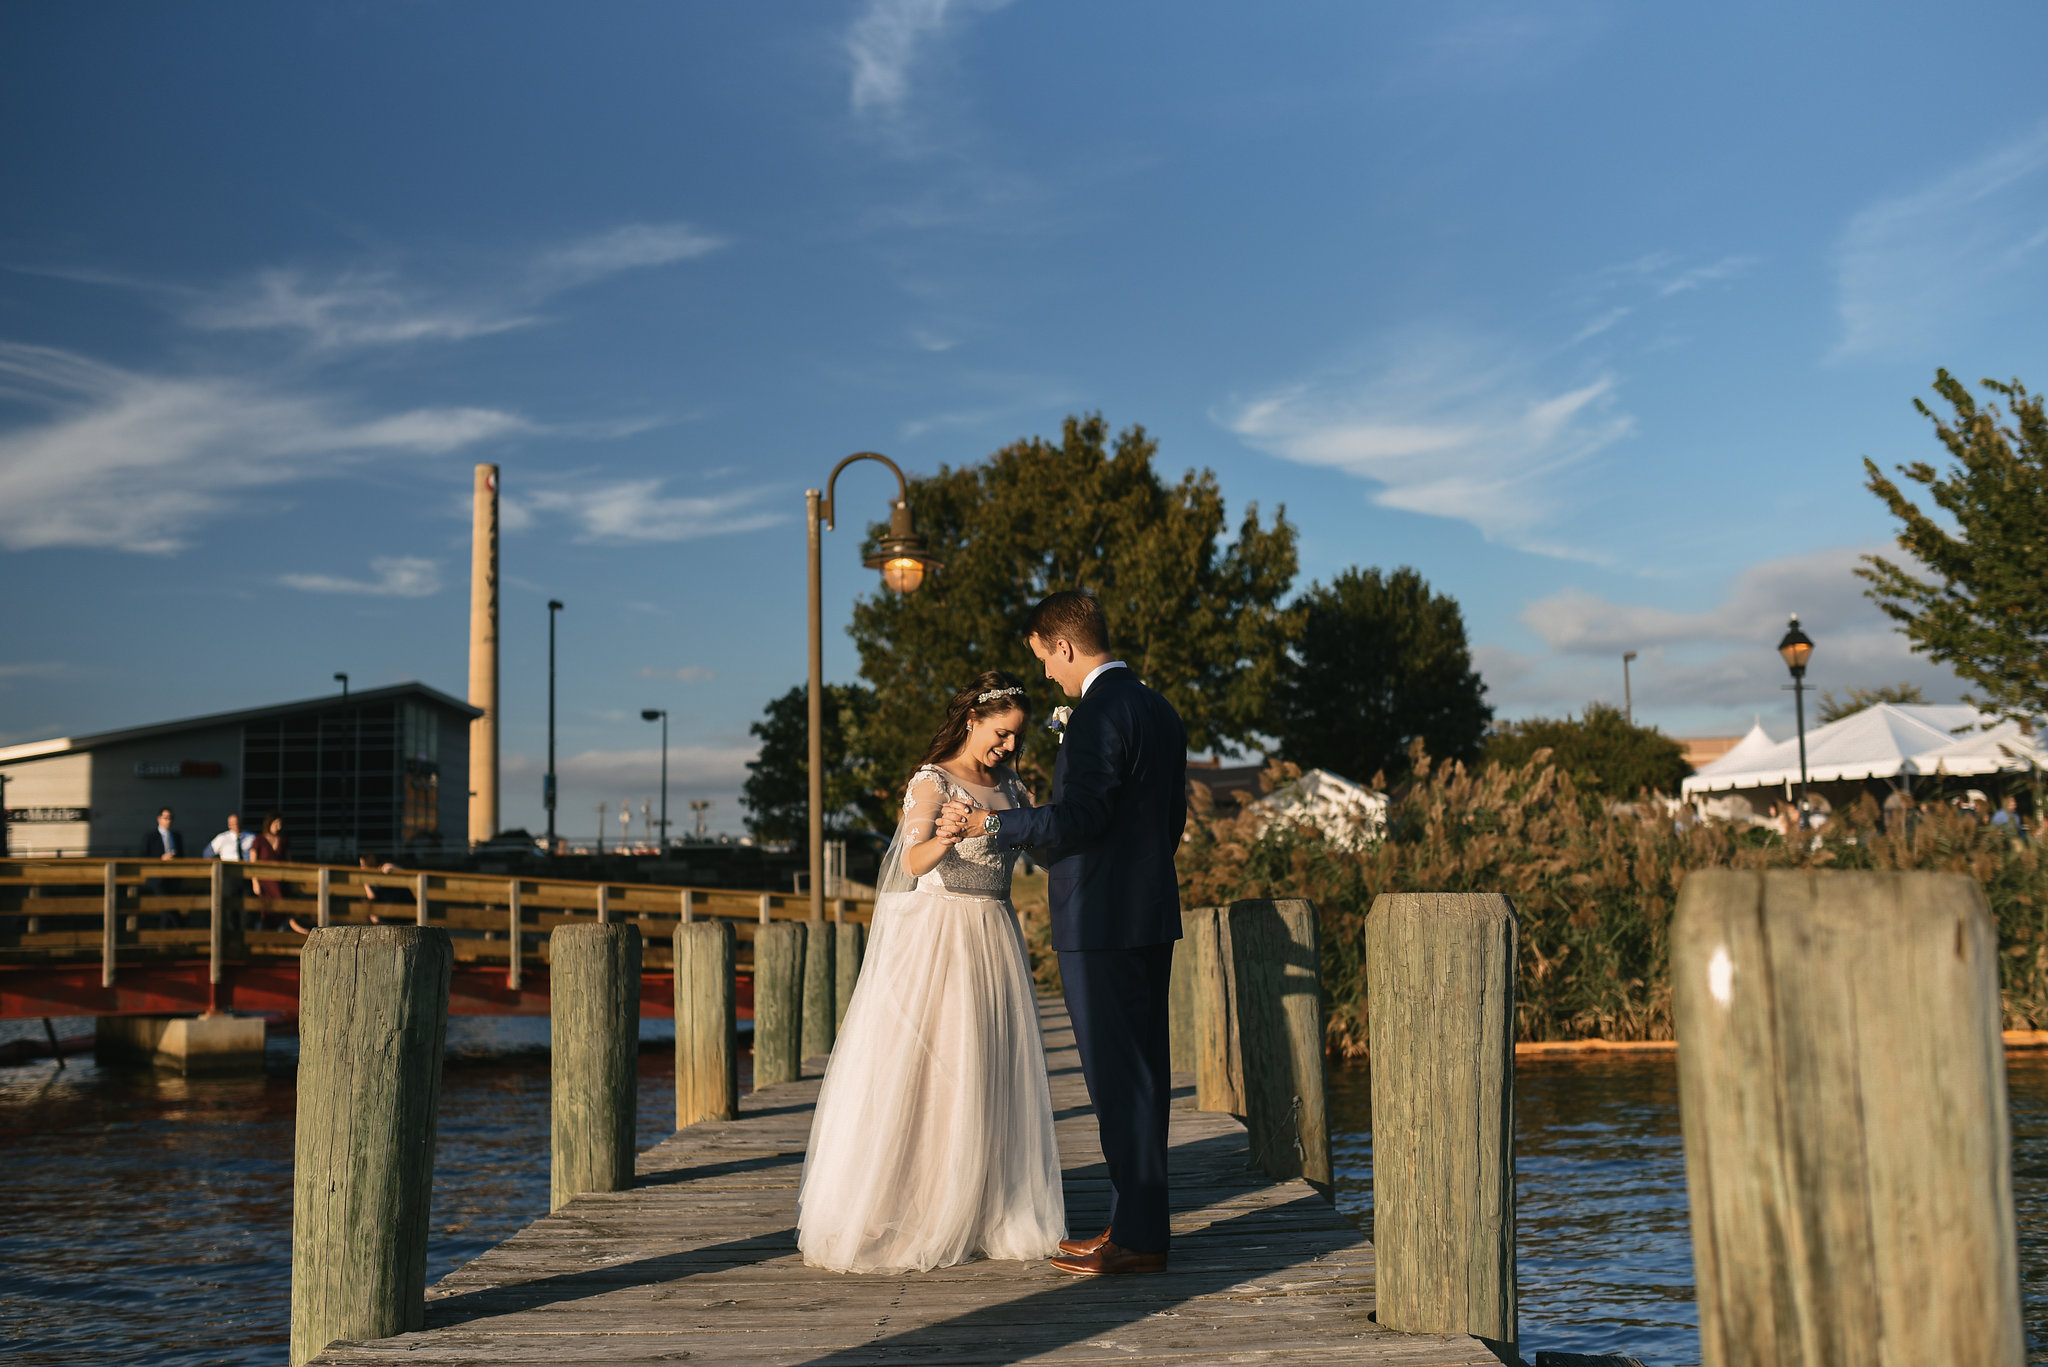 Baltimore, Canton, Modern, Outdoor Reception, Maryland Wedding Photographer, Romantic, Classic, Boston Street Pier Park, Bride and groom dancing on pier, Waterfront